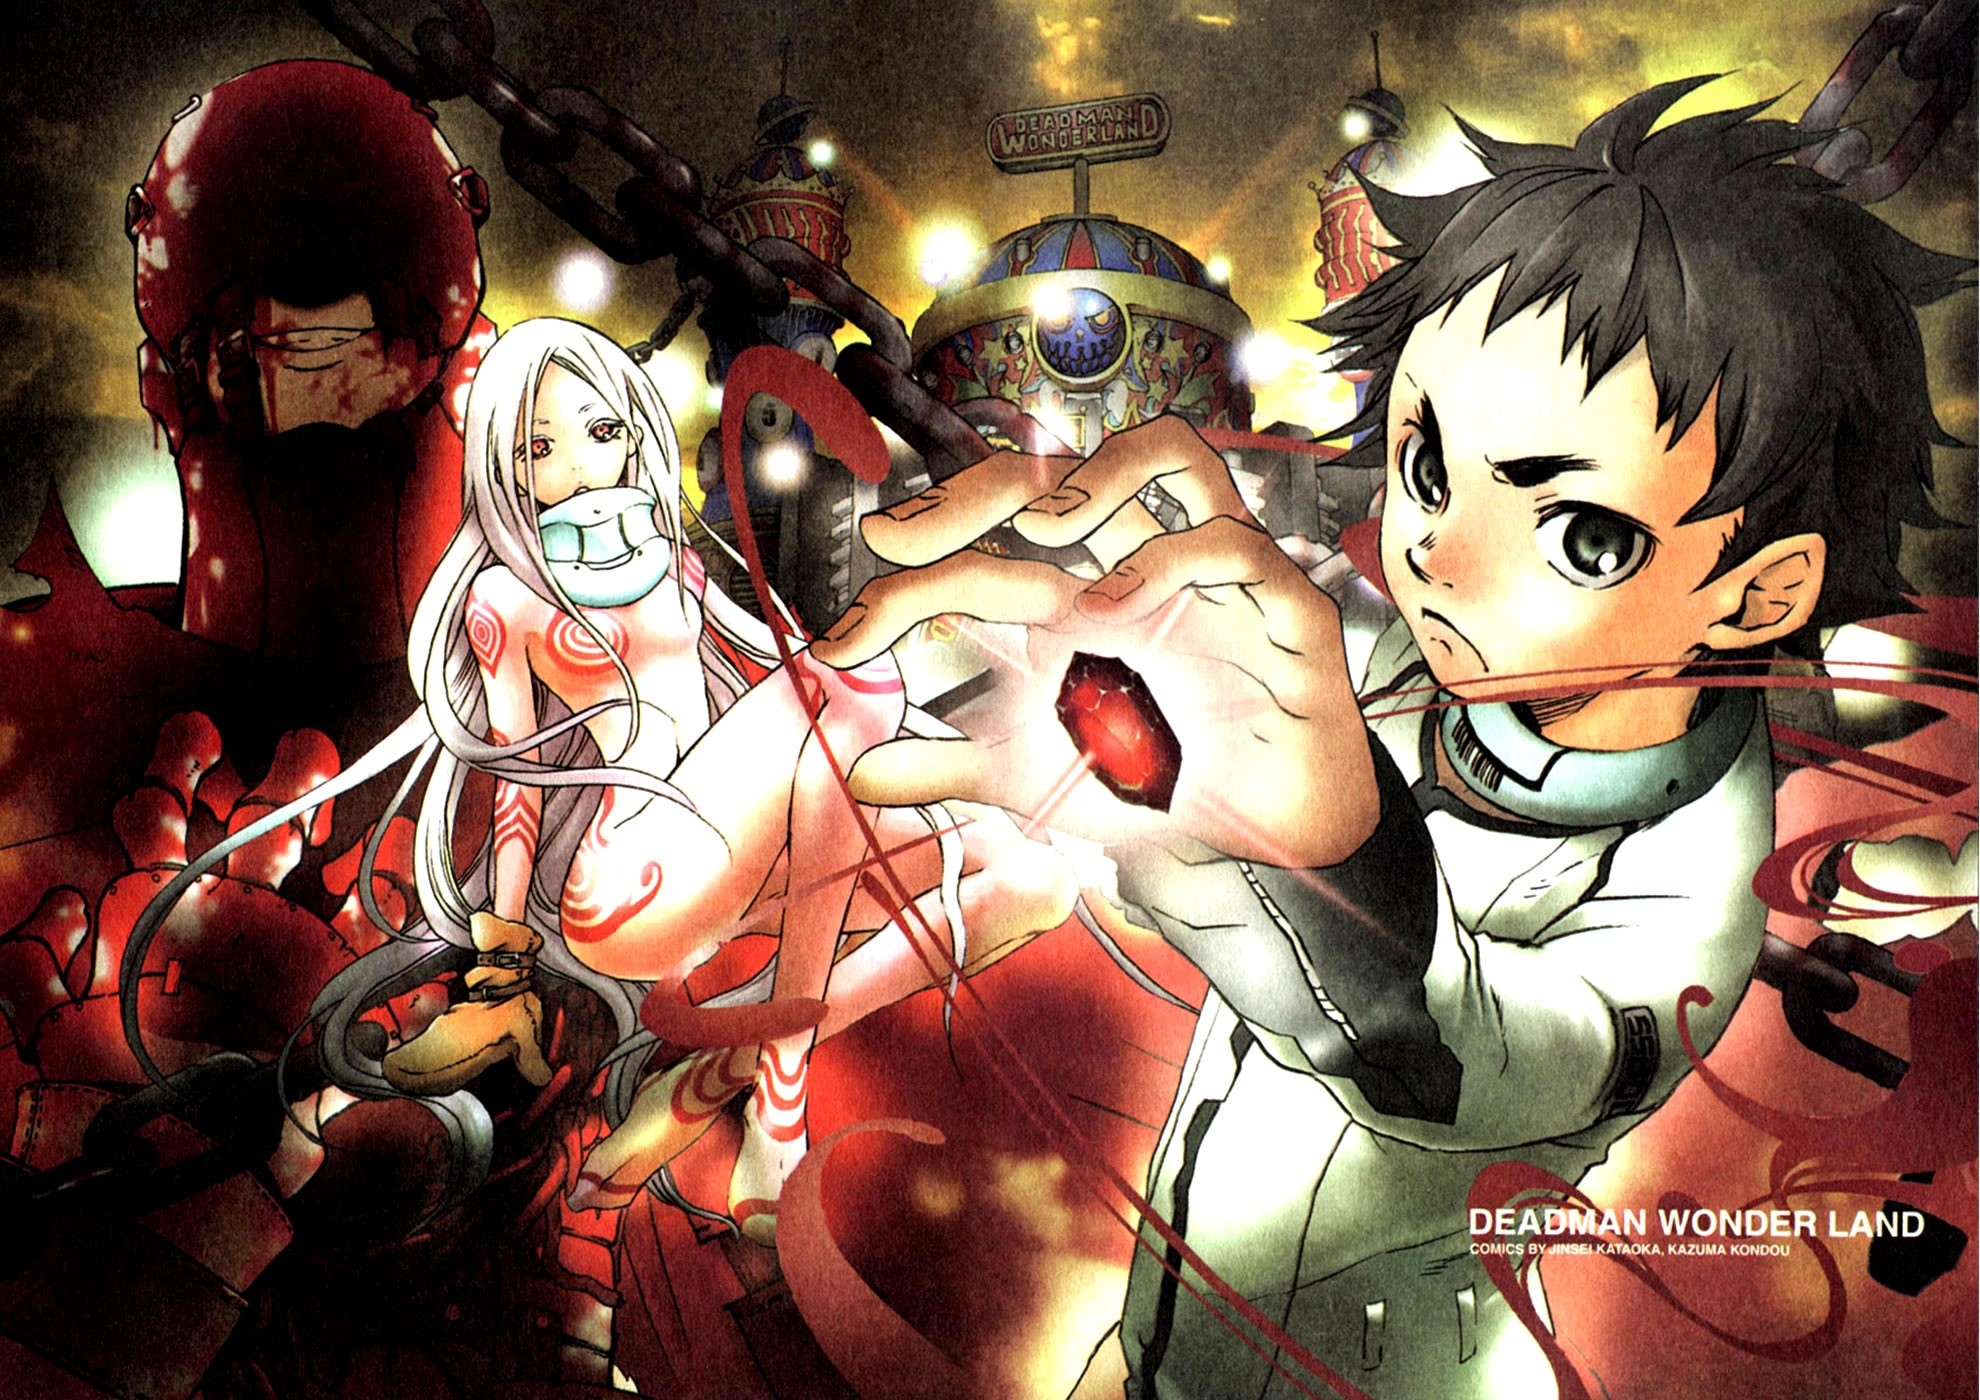 1980x1400 Deadman Wonderland Wallpaper 34+